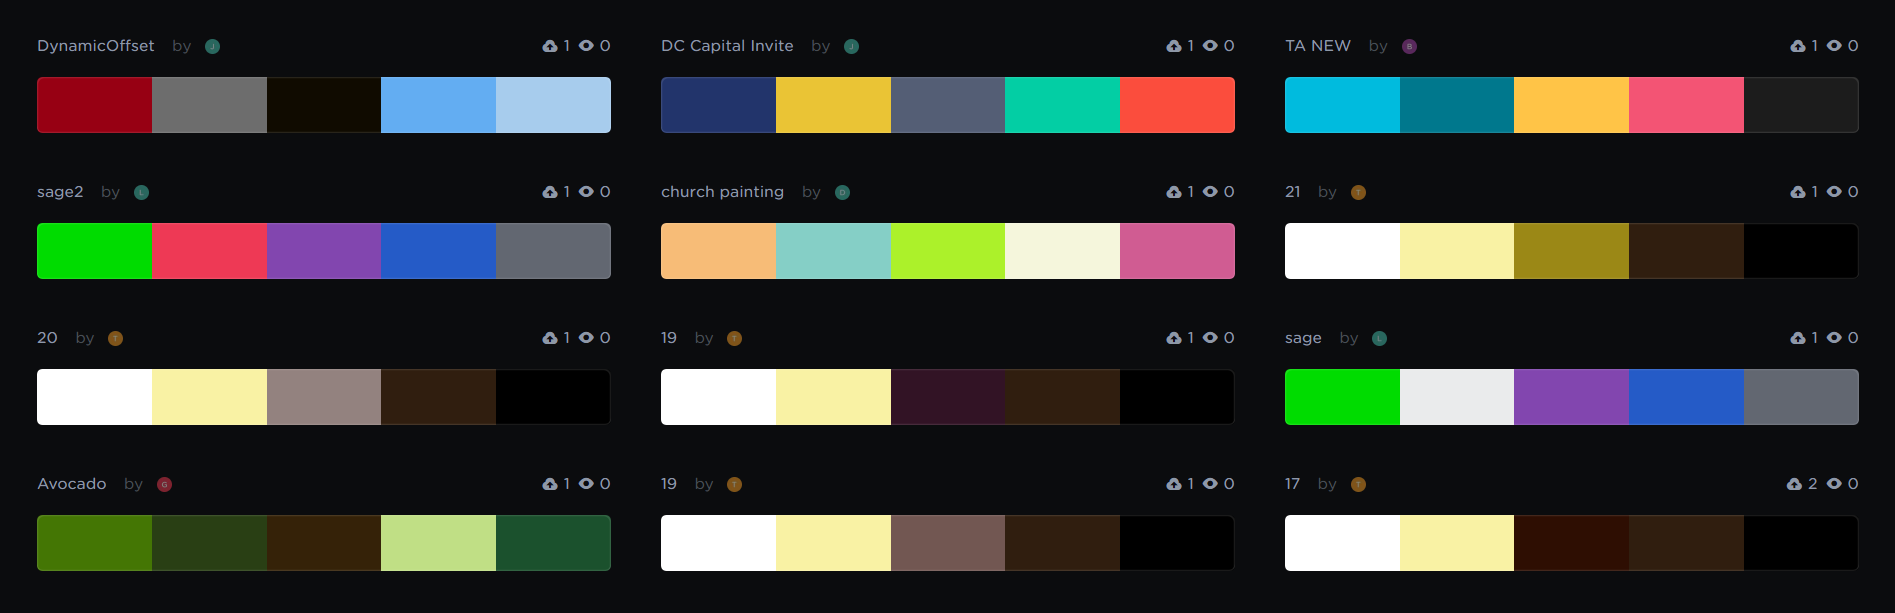 Coolors is a design tool for marketers, start-up companies, designers, and photographers that helps users pick out the perfect color palette based on the thousands of color scheme selections.